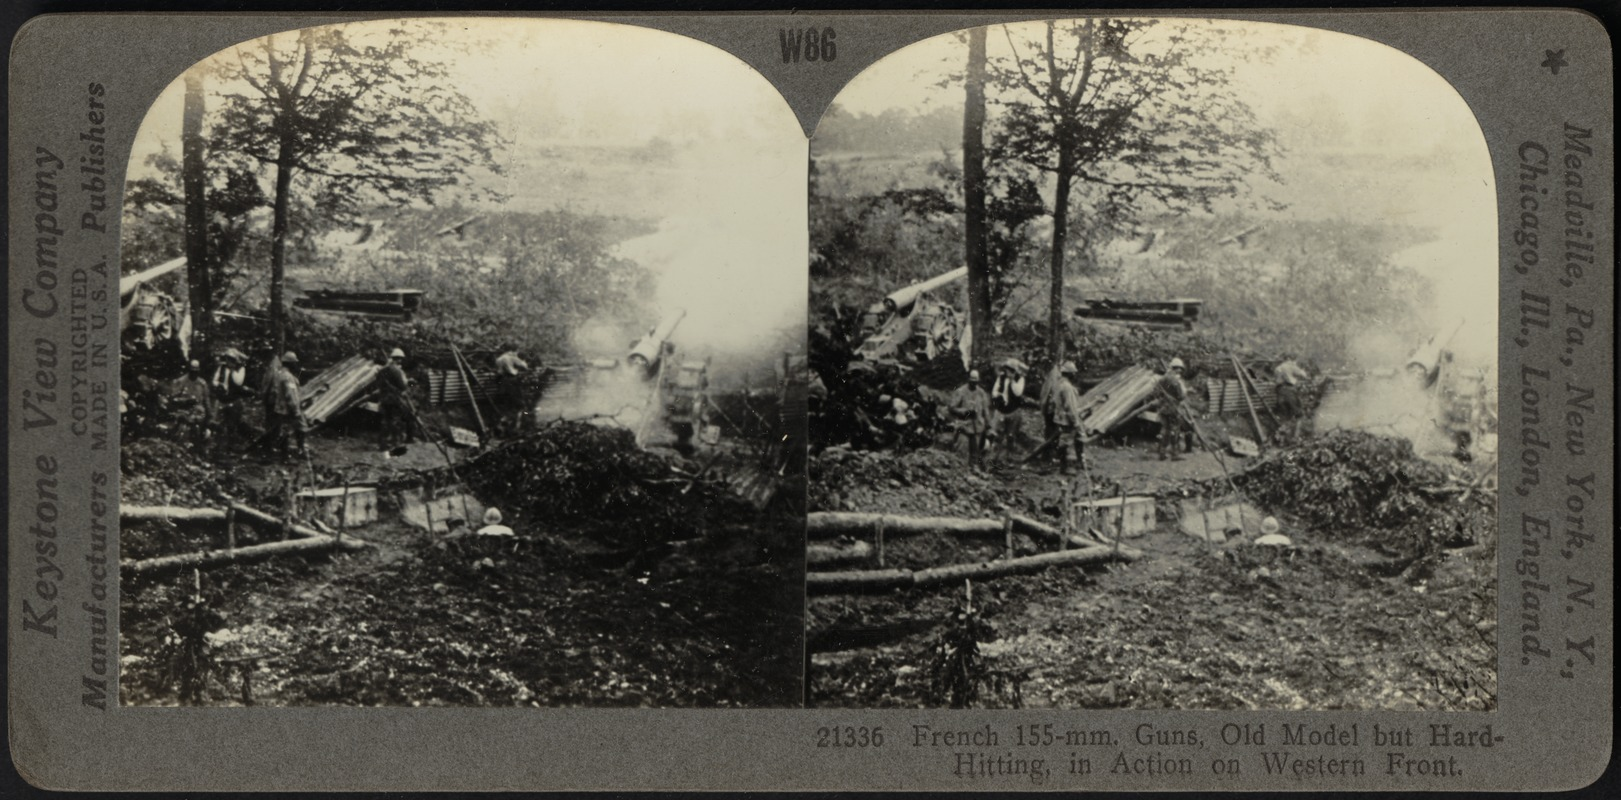 A battery of 155-mm. field guns in action on the western front